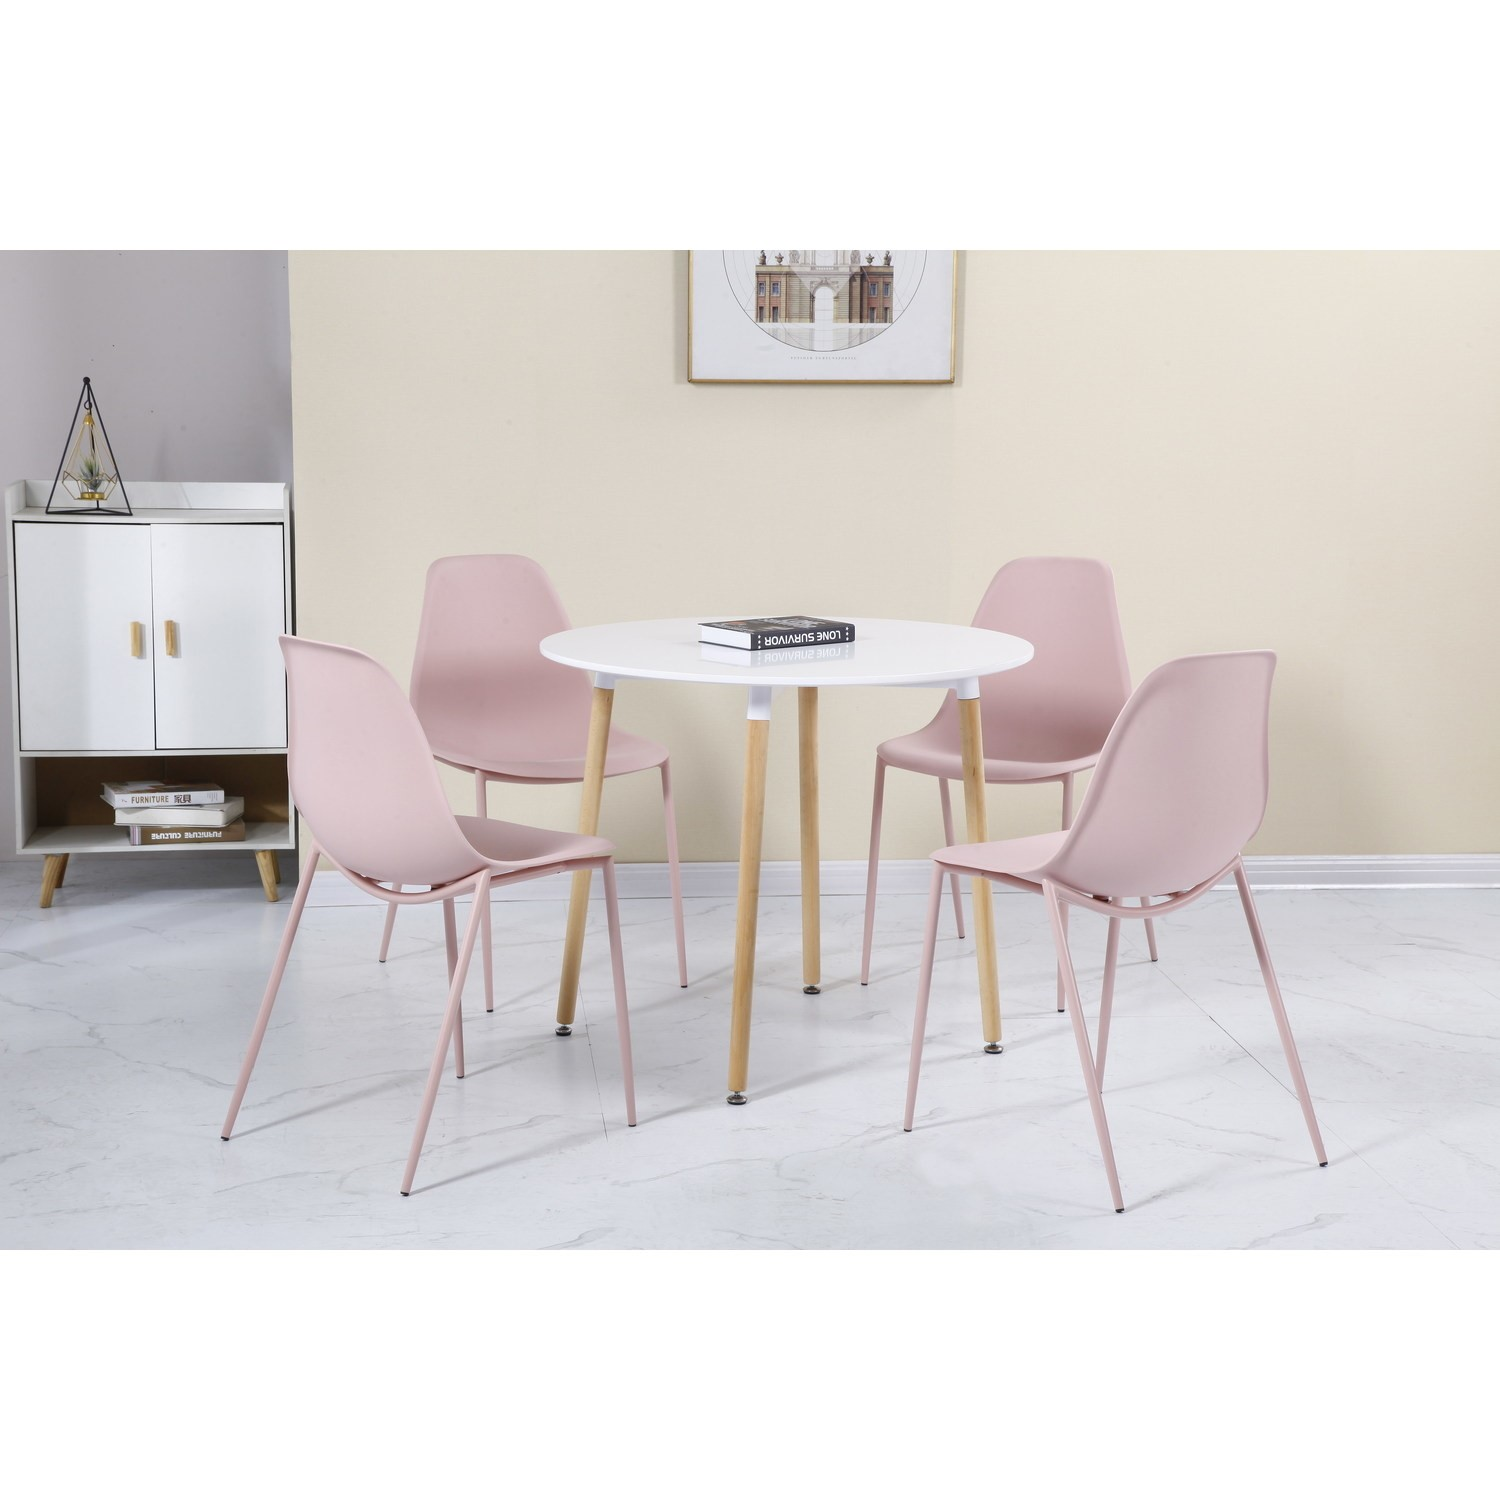 Picture of: Lindon White And Oak Dining Set 4 Pink Chairs Furniture123